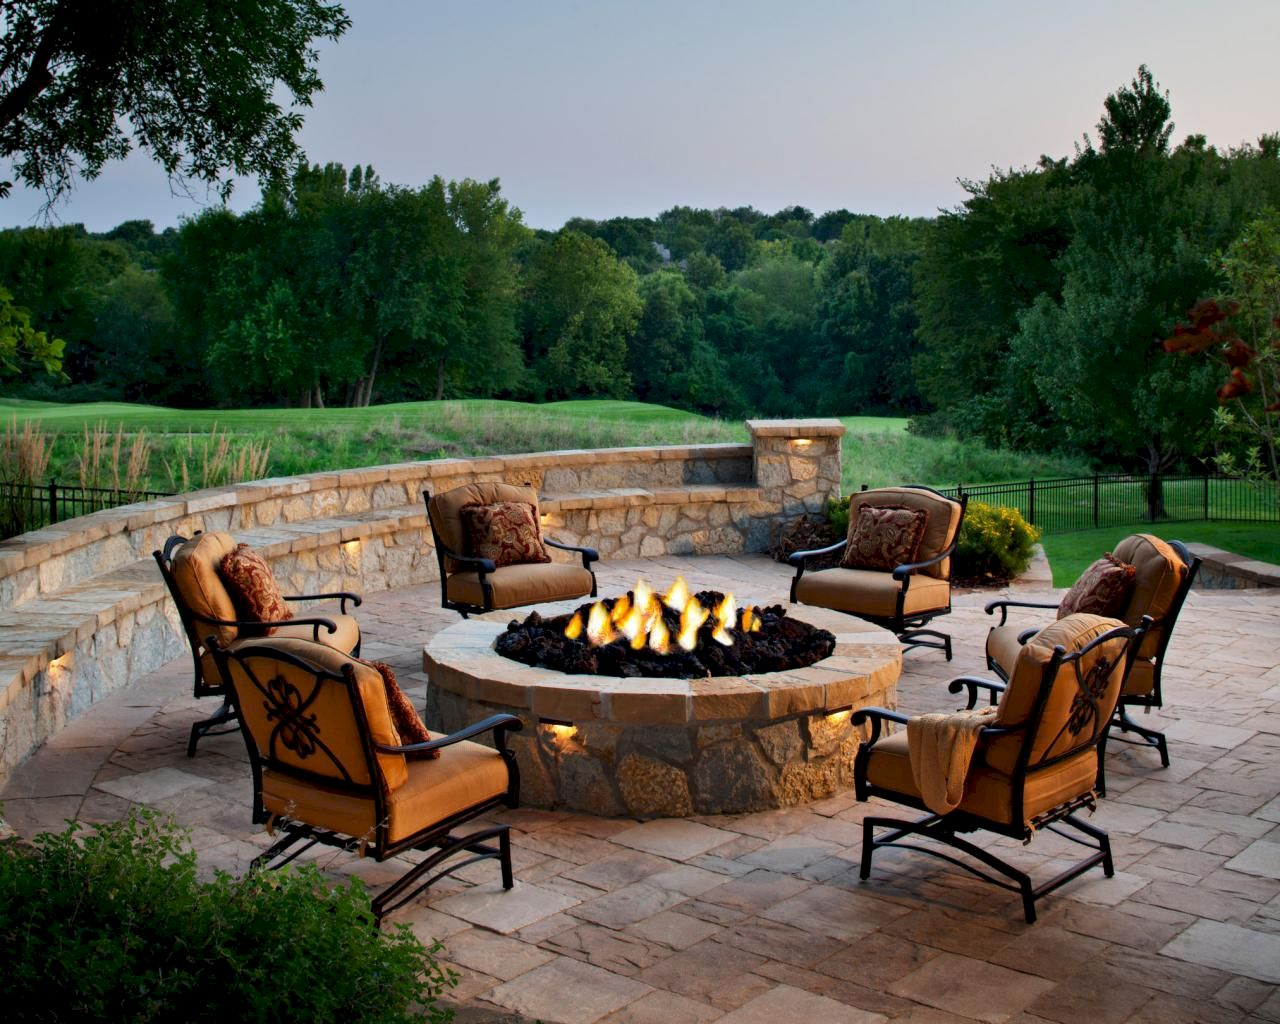 https://elonahome.com/wp-content/uploads/2019/01/Round-firepit-design-for-outdoor-living-and-gathering-space-ideas-Part-12.jpeg